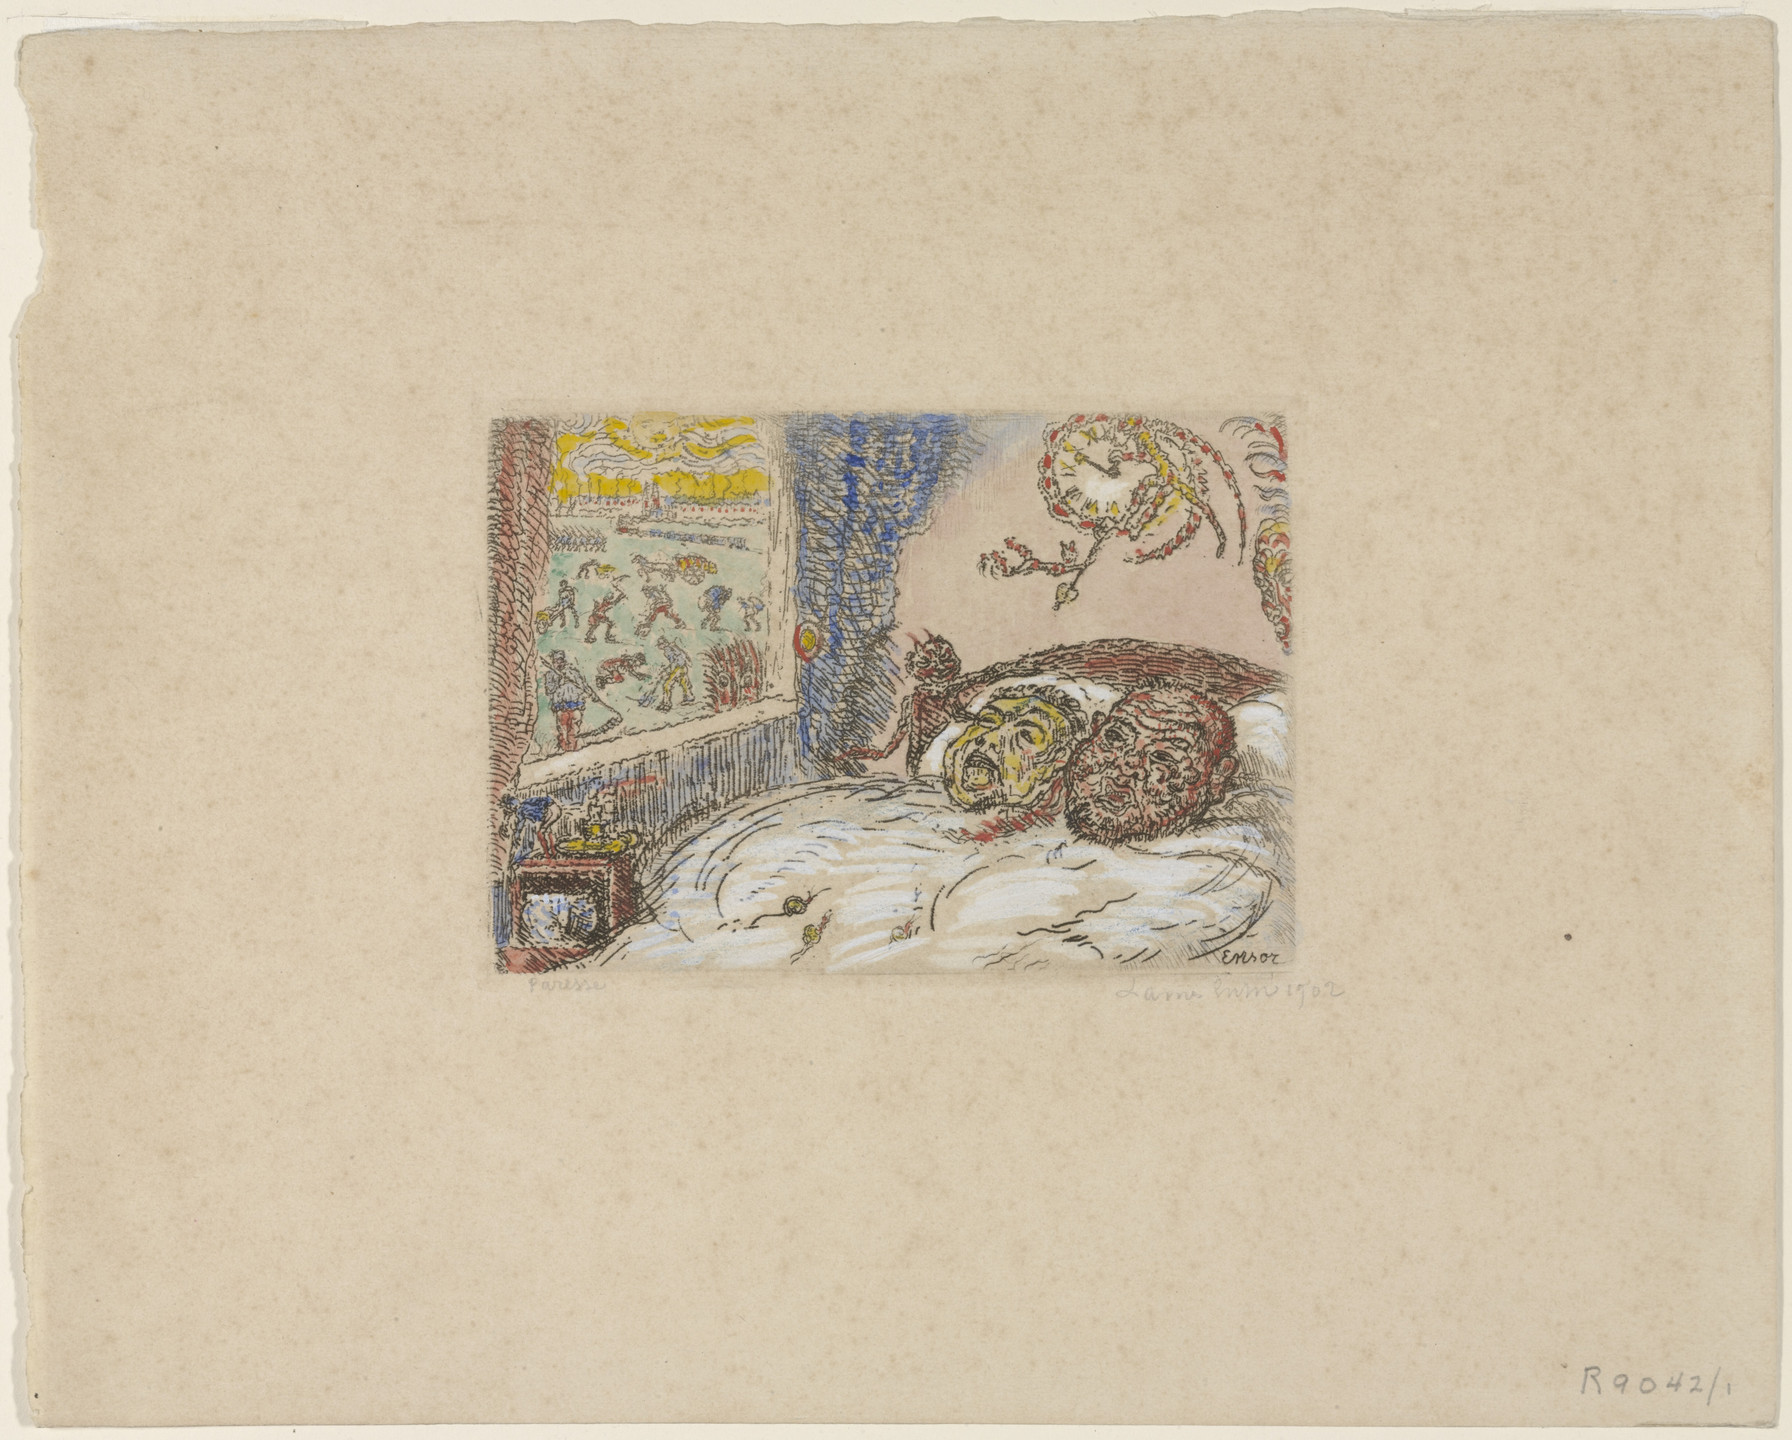 James Ensor. Sloth (La Paresse). 1902